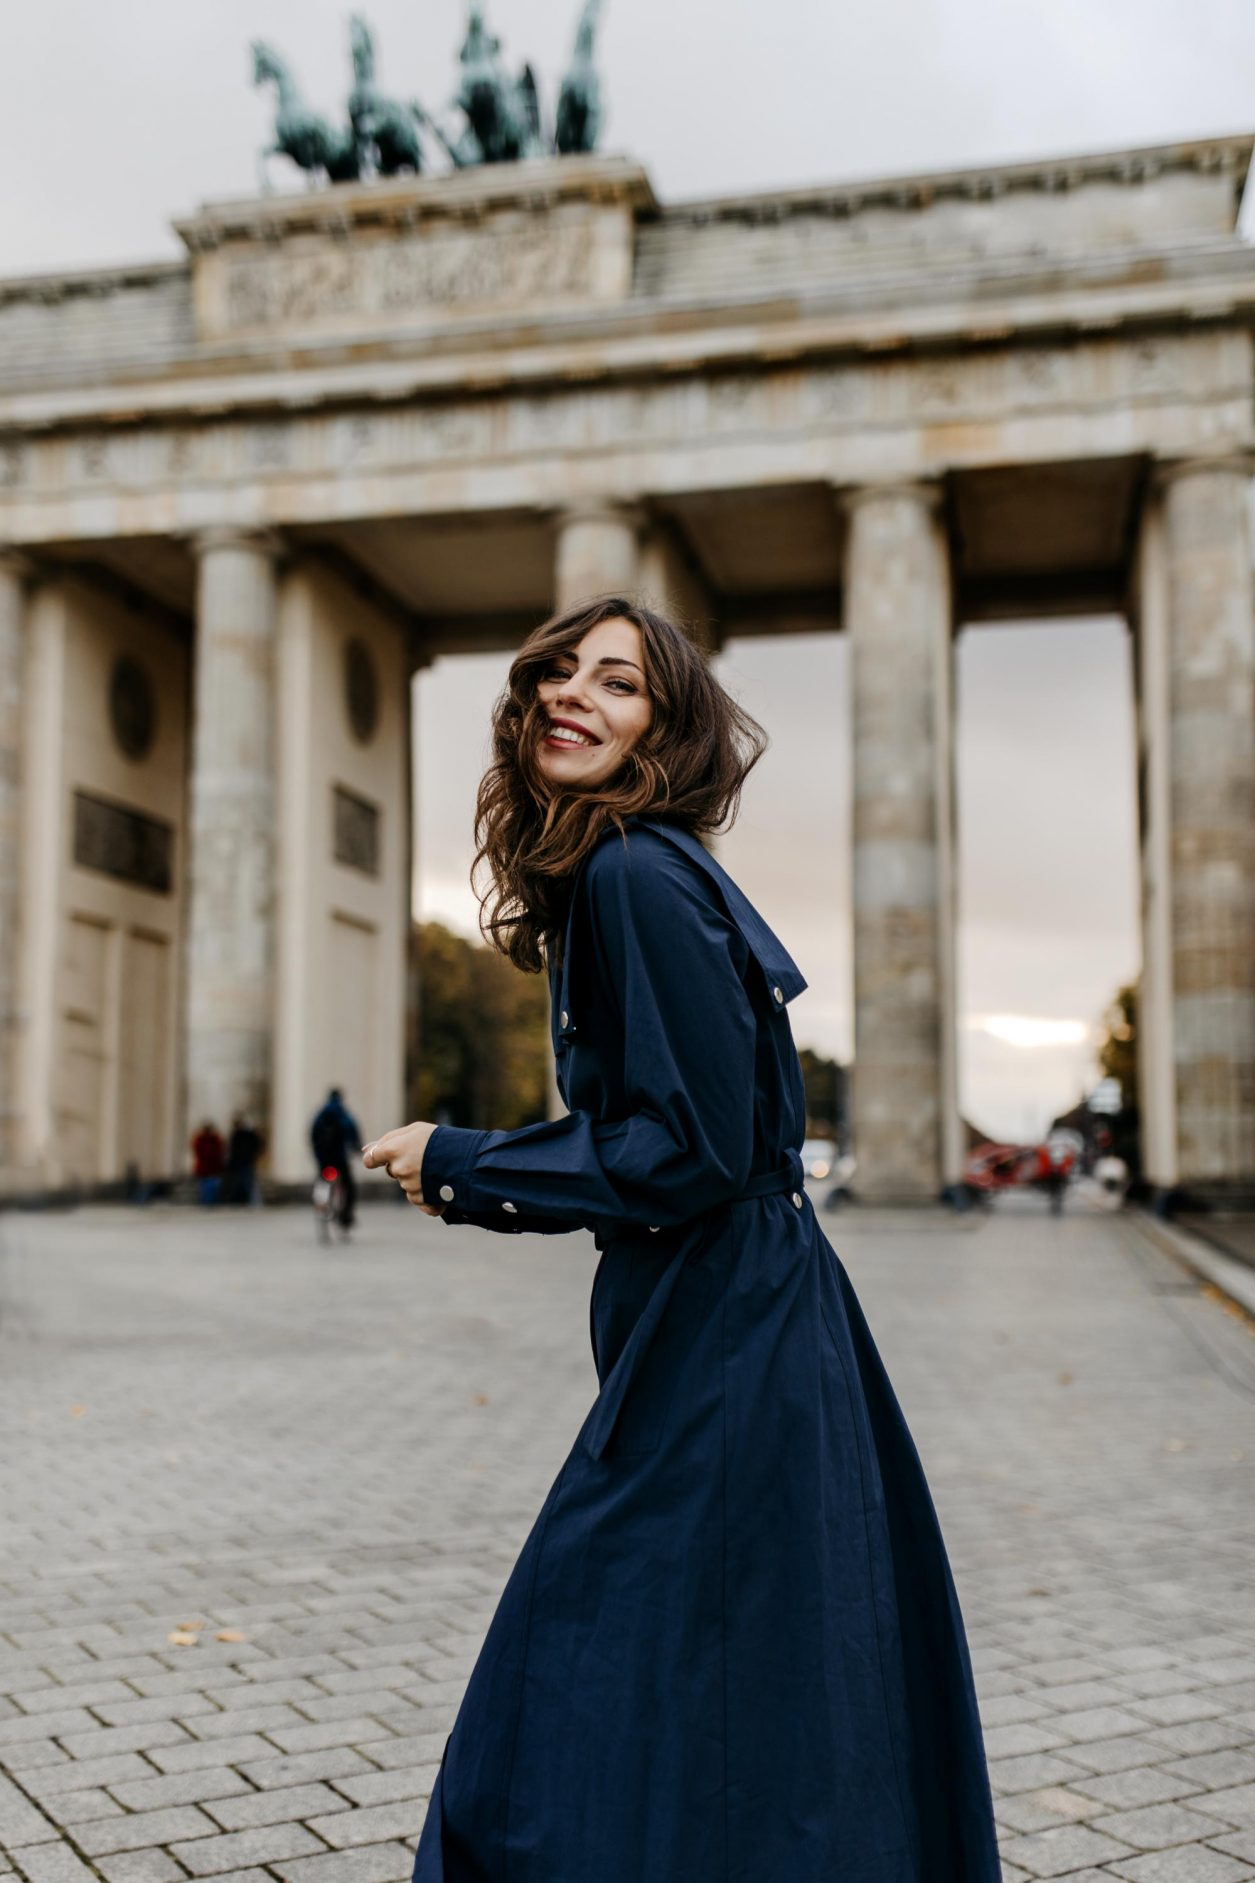 Streetstyle by fashion blogger from Berlin Masha Sedgwick | ootd, fall must-have, fall outfit trends | Wearing navy blue maxi shirt dress by Gestuz, black heeled leather boots by Stella McCartney, black leather vintage Chanel bag | Photo spot: Berlin Brandenburg Gate, photographer Tonya Matyu